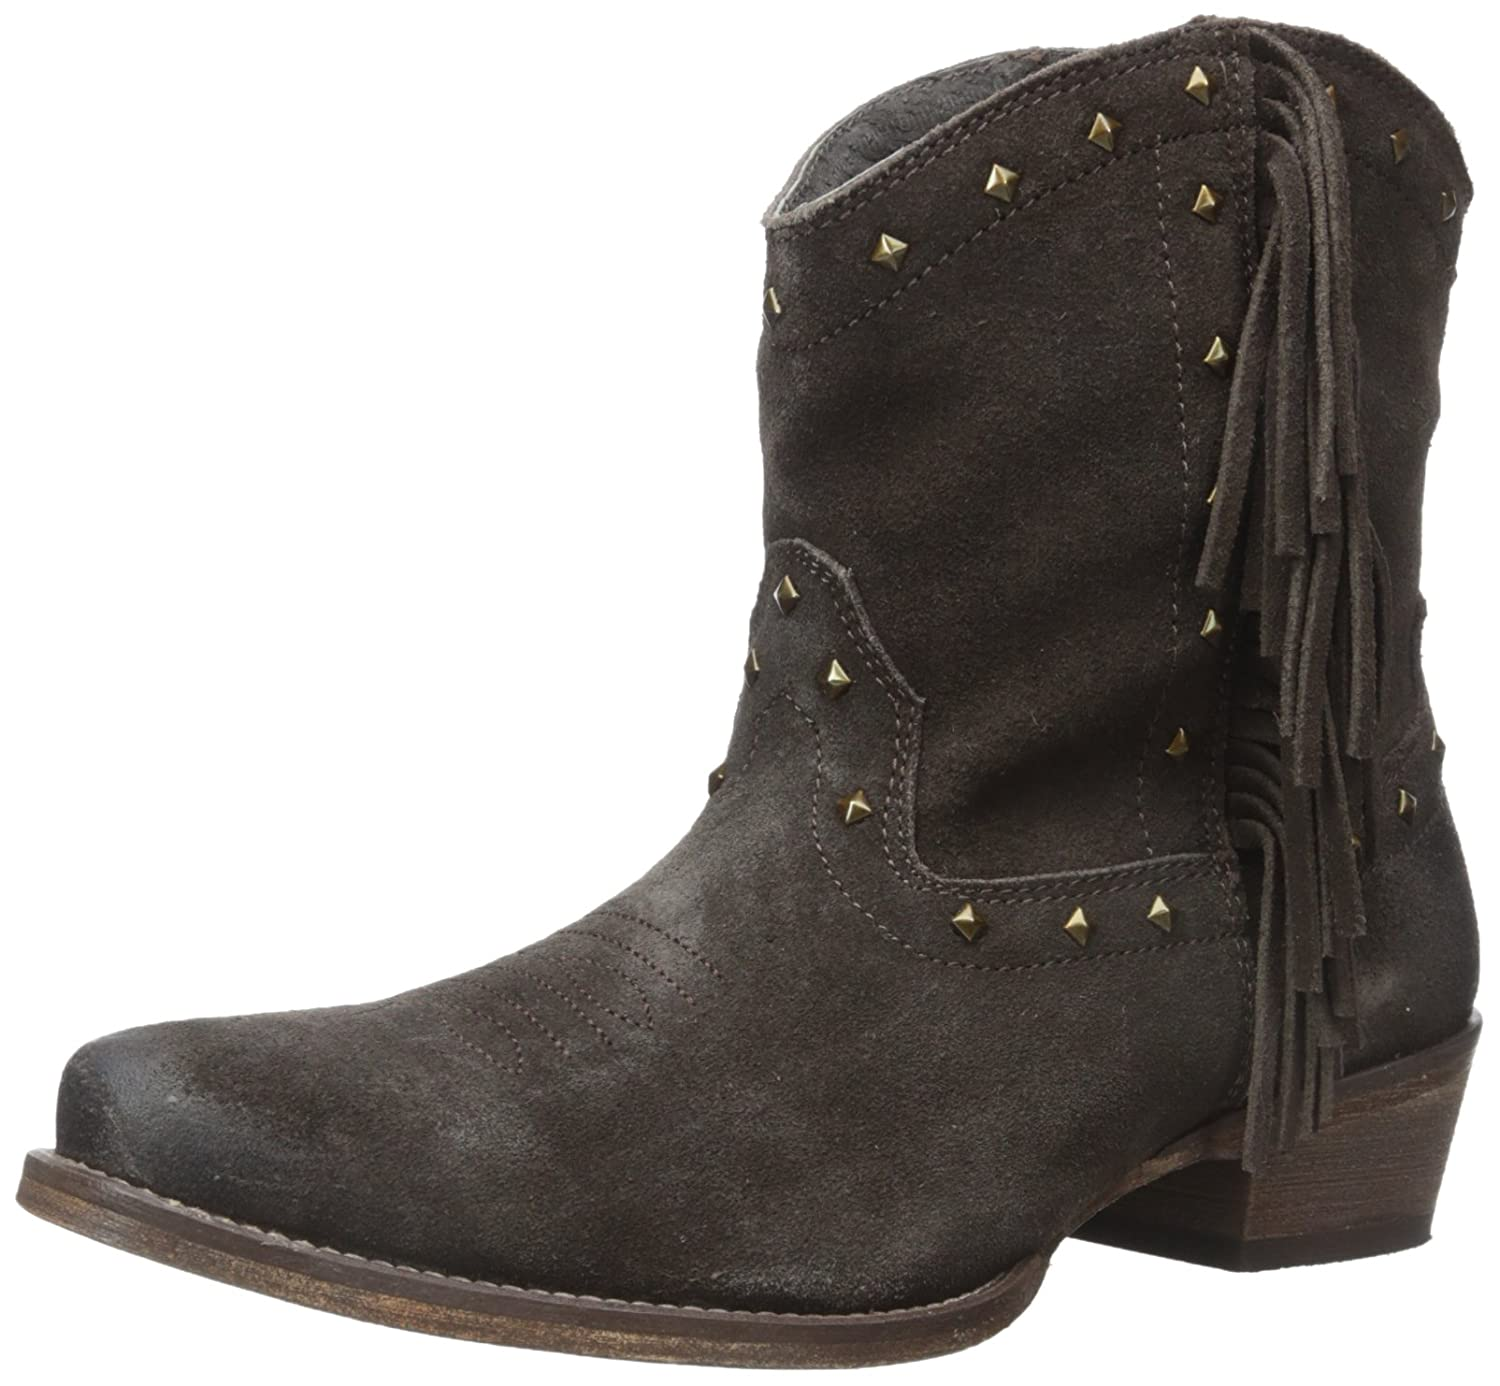 db92a383075 ROPER Women's Sassy Ankle Bootie